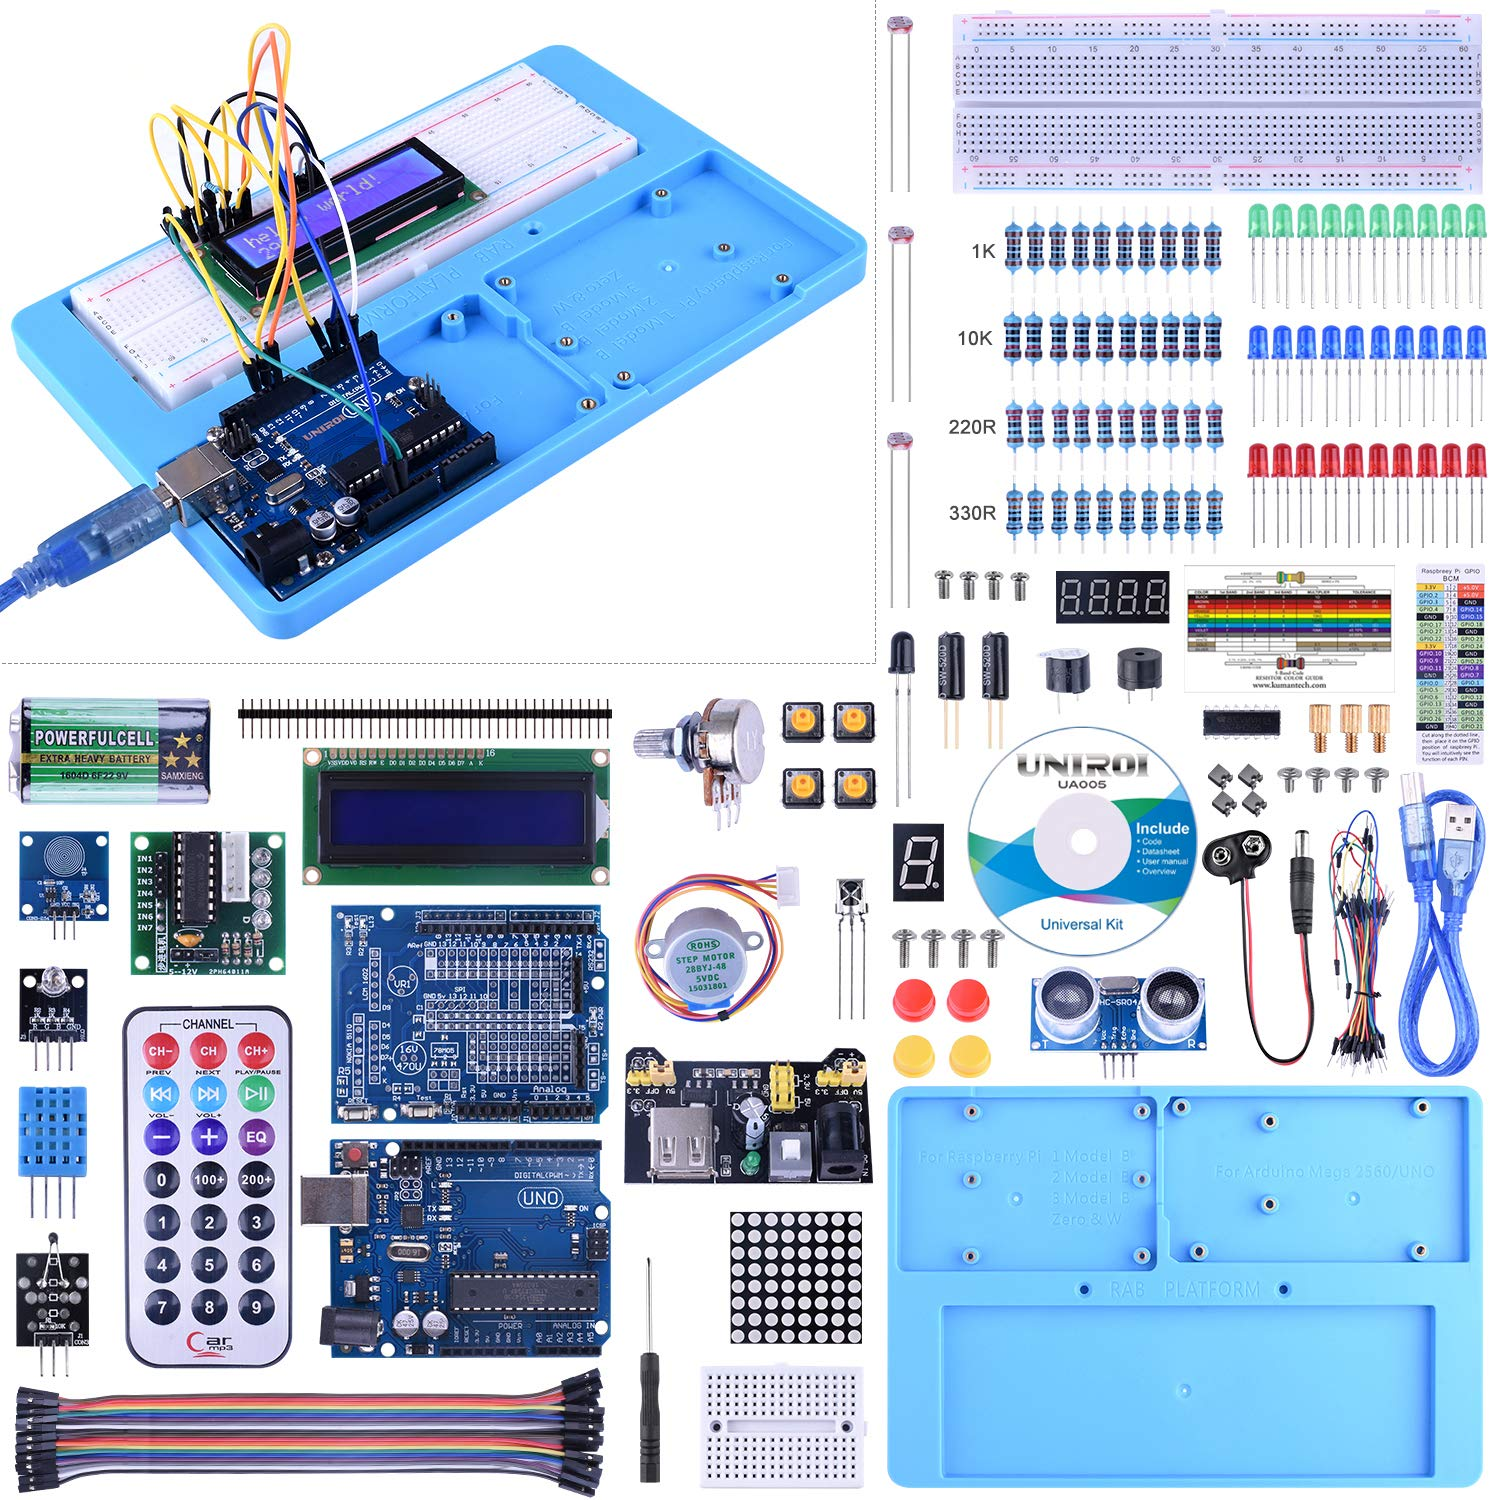 UNIROI UNO Starter Kit for Arduino, Complete Arduino Kit for Beginner with Detailed Tutorials, RAB Holder, Breadboard for Arduino UNO R3 Arduino Mega 2560 Arduino Nano Robot (52 Items) UA005